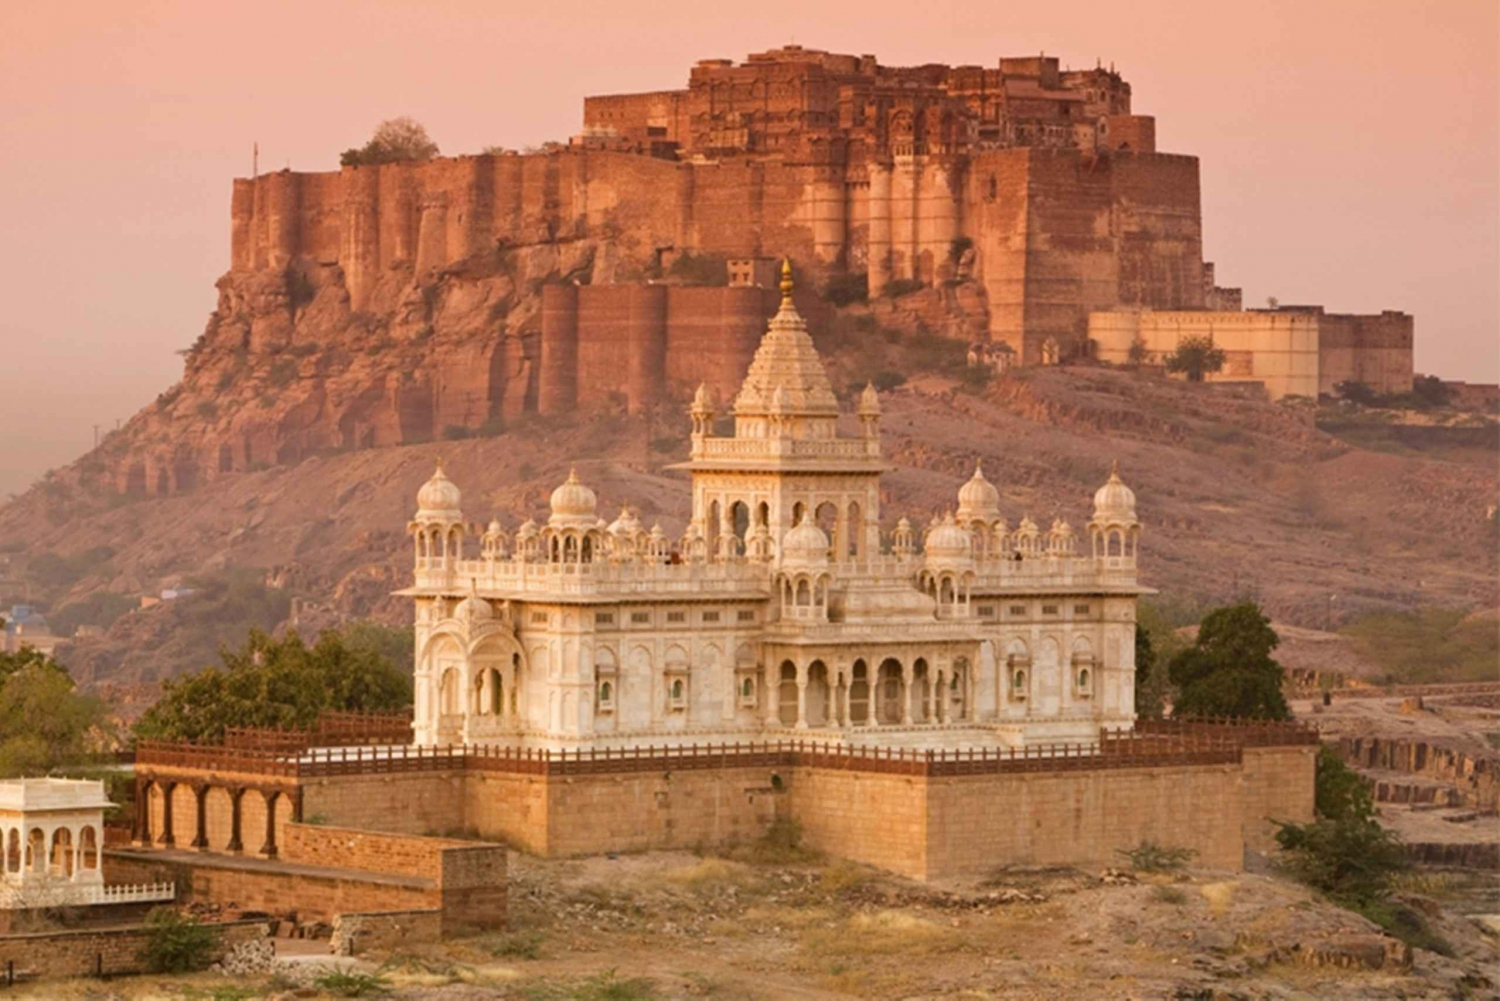 Jodhpur: Full-Day City Private Tour & Camel Safari